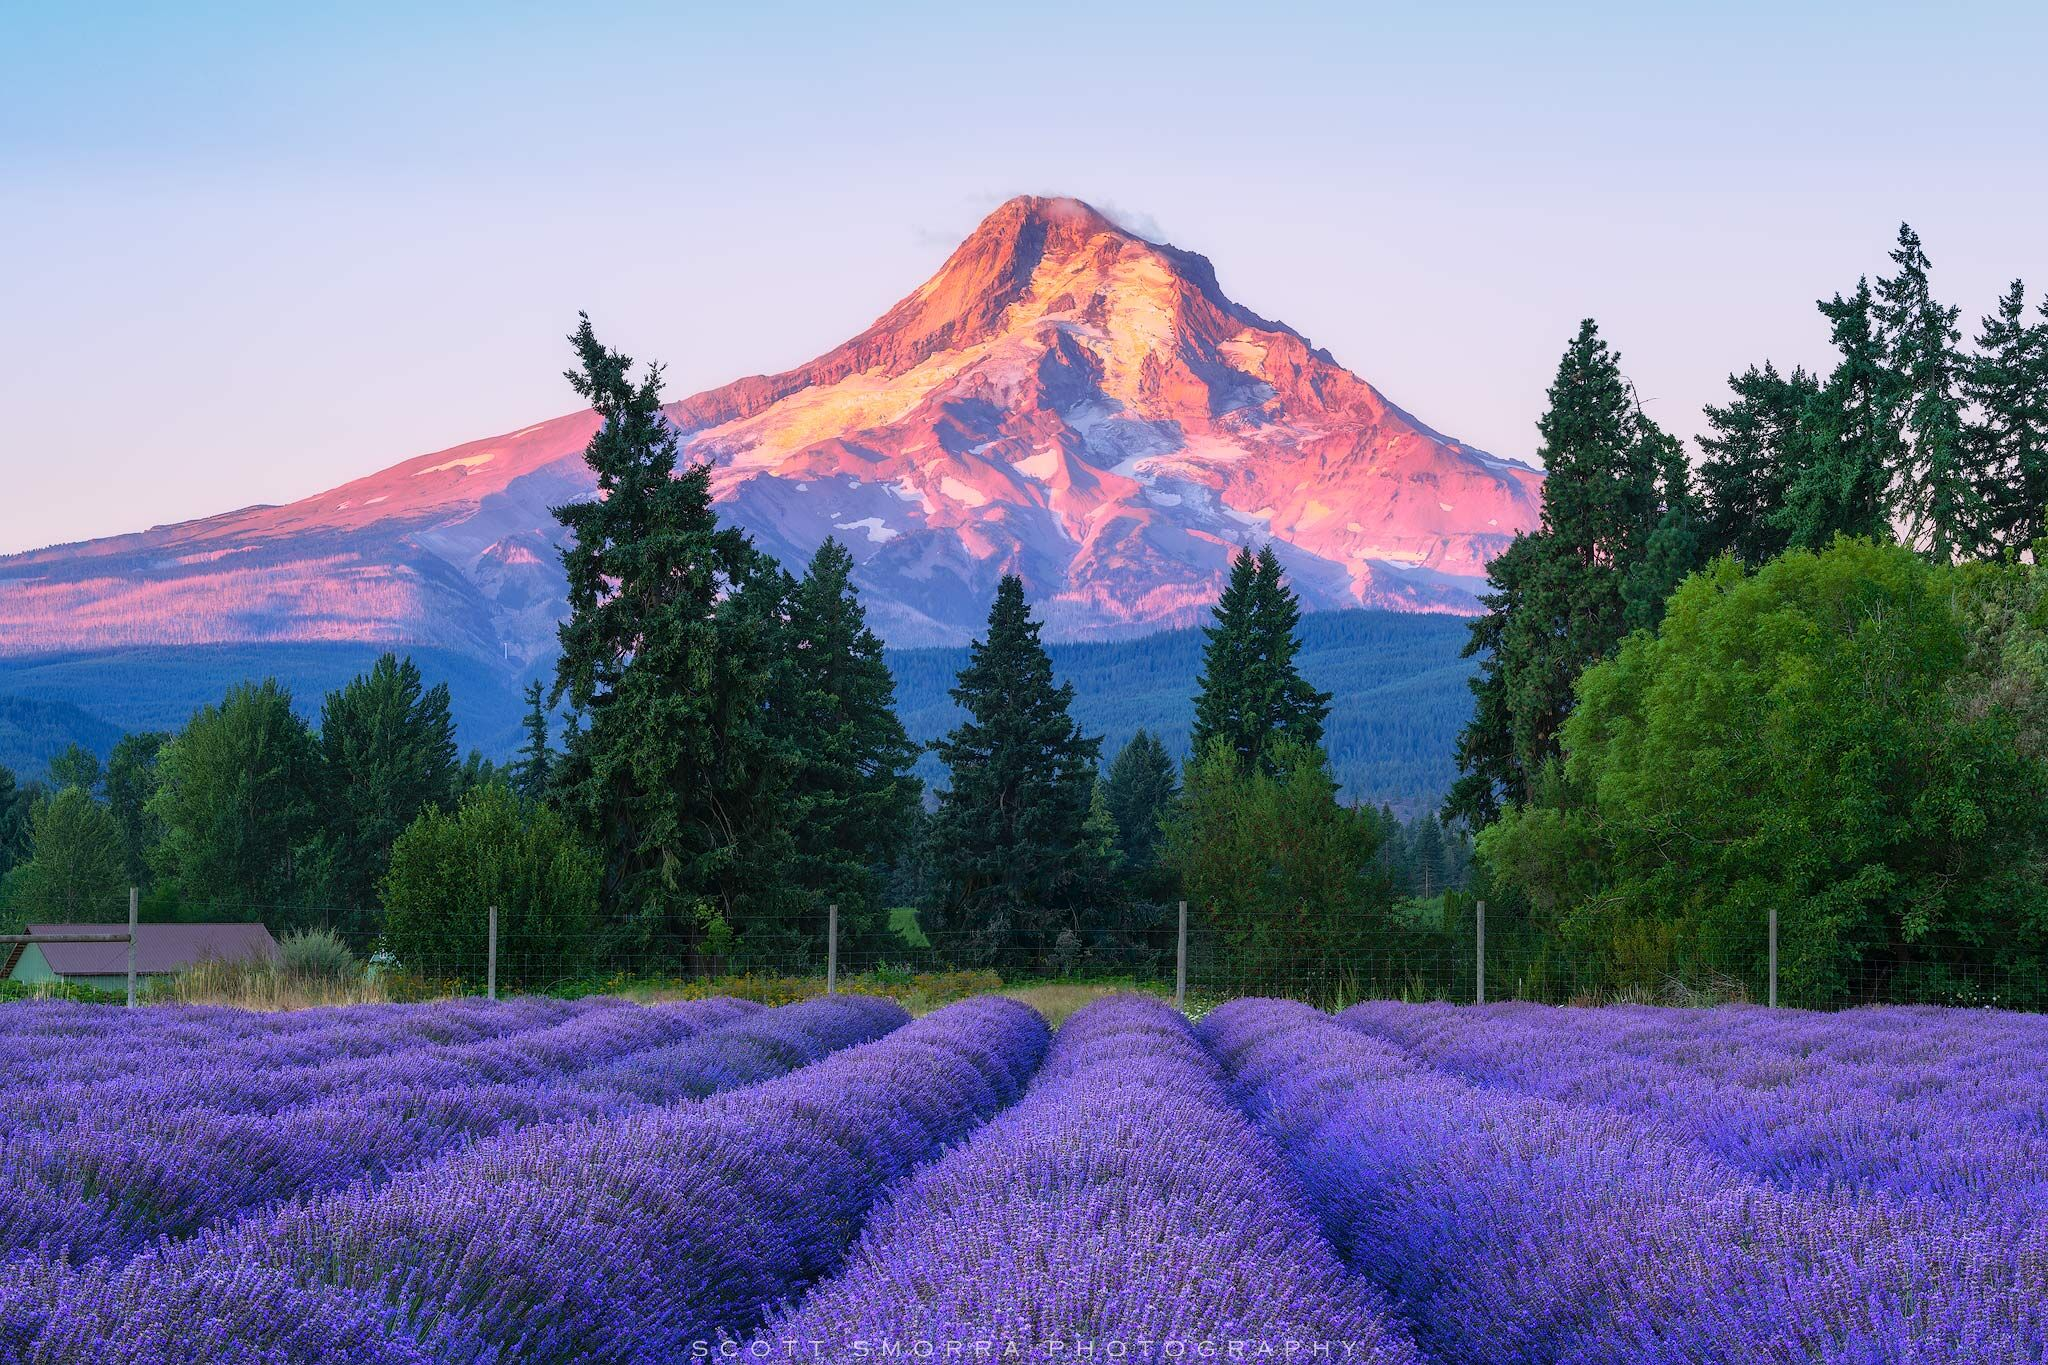 Mt Hood rises above a beautiful field of lavender just after sunrise at Lavender Valley Farms near Hood River, Oregon.